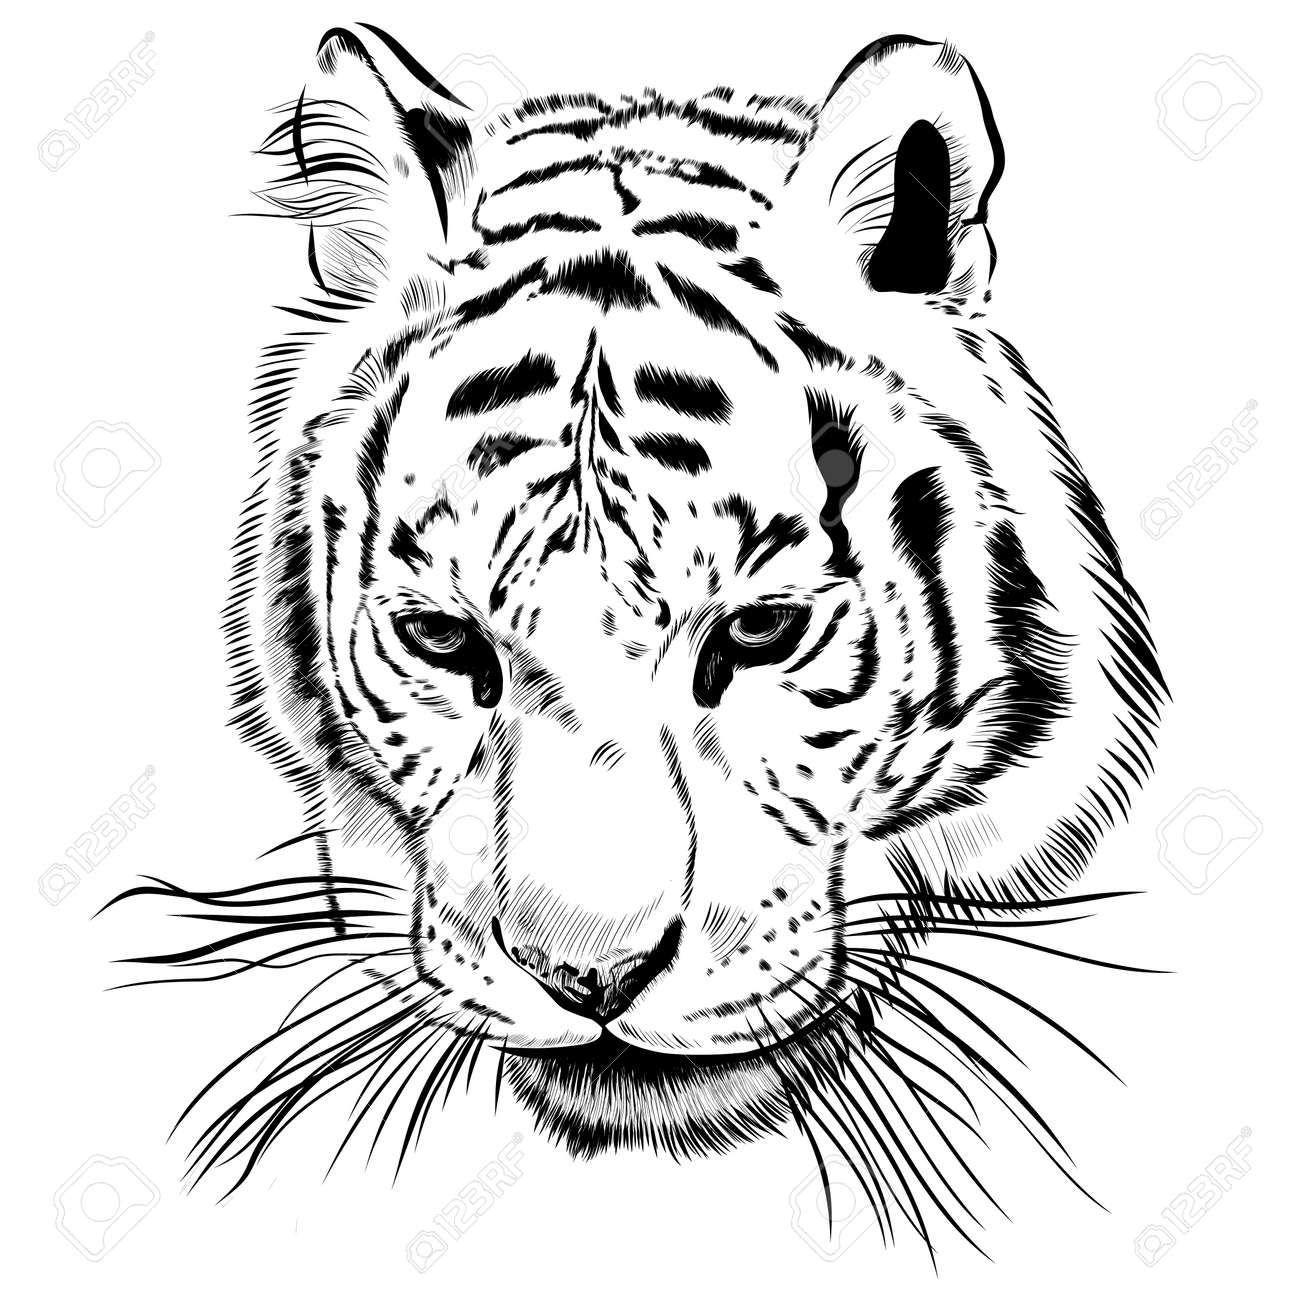 Original artwork tiger with dark stripes, isolated on white background, and sepia color version, outline llustration. - 46605032